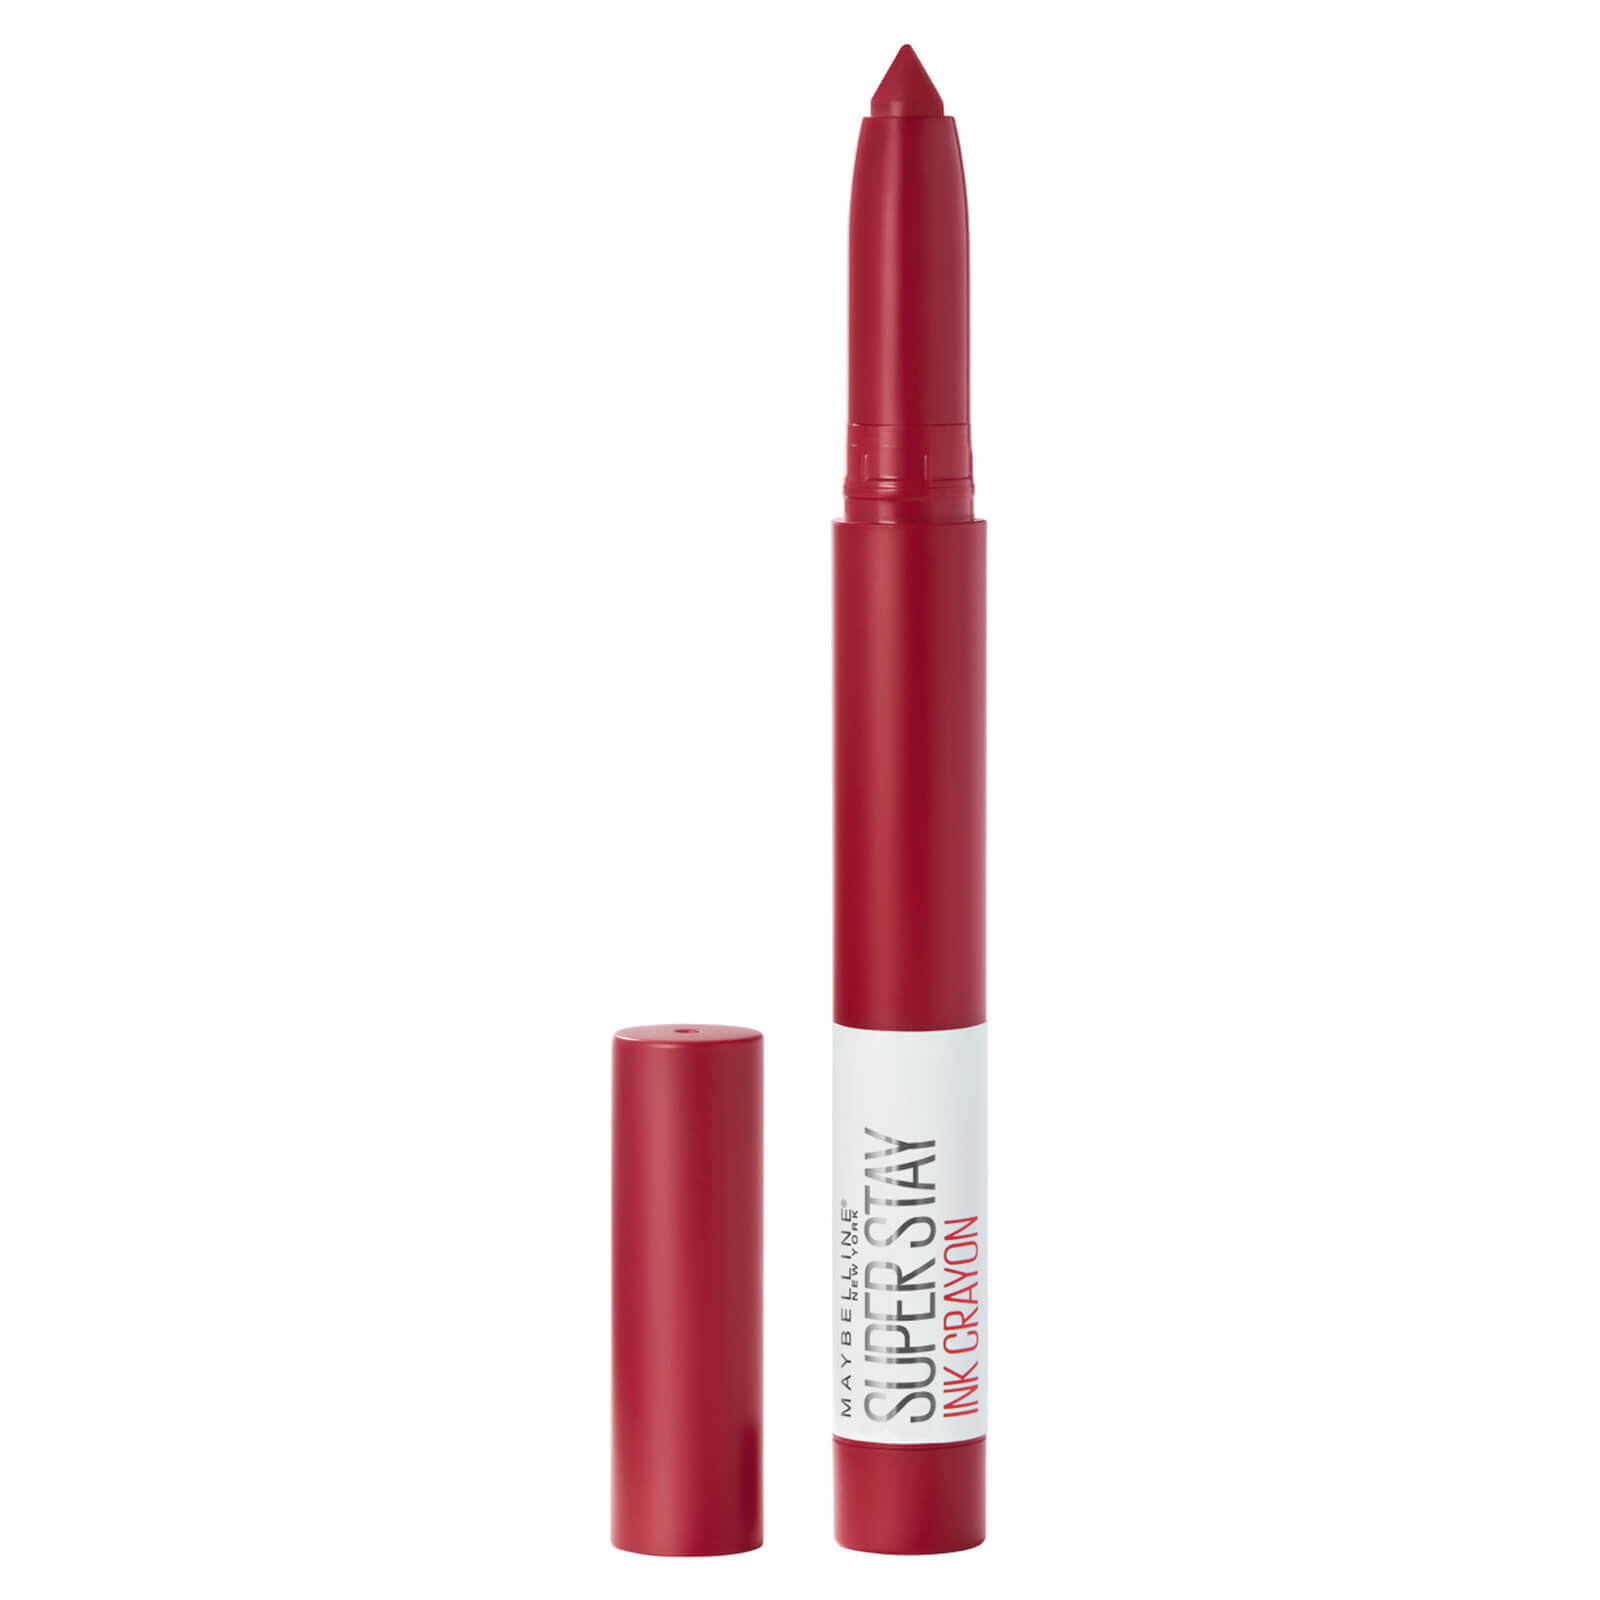 Maybelline Superstay Matte Ink Crayon Lipstick 32g (Various Shades) - 50 Own Your Empire